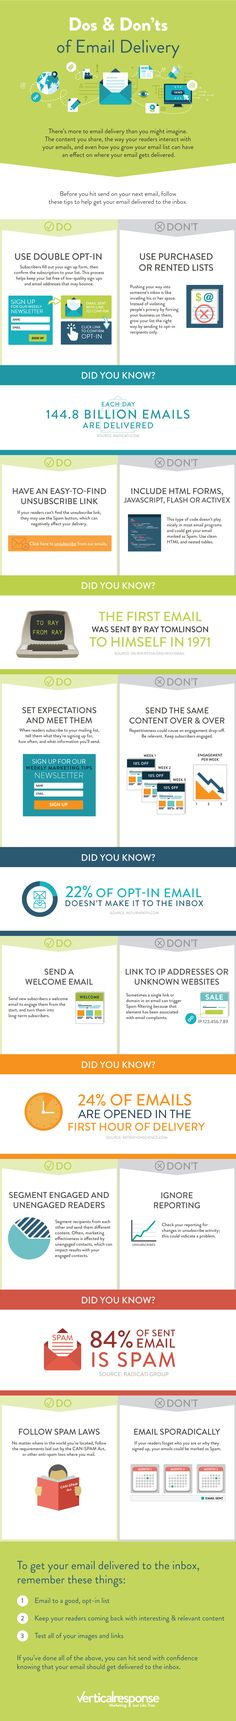 Dos and Don'ts of Email Delivery #infographic #Marketing #EmailMarketing